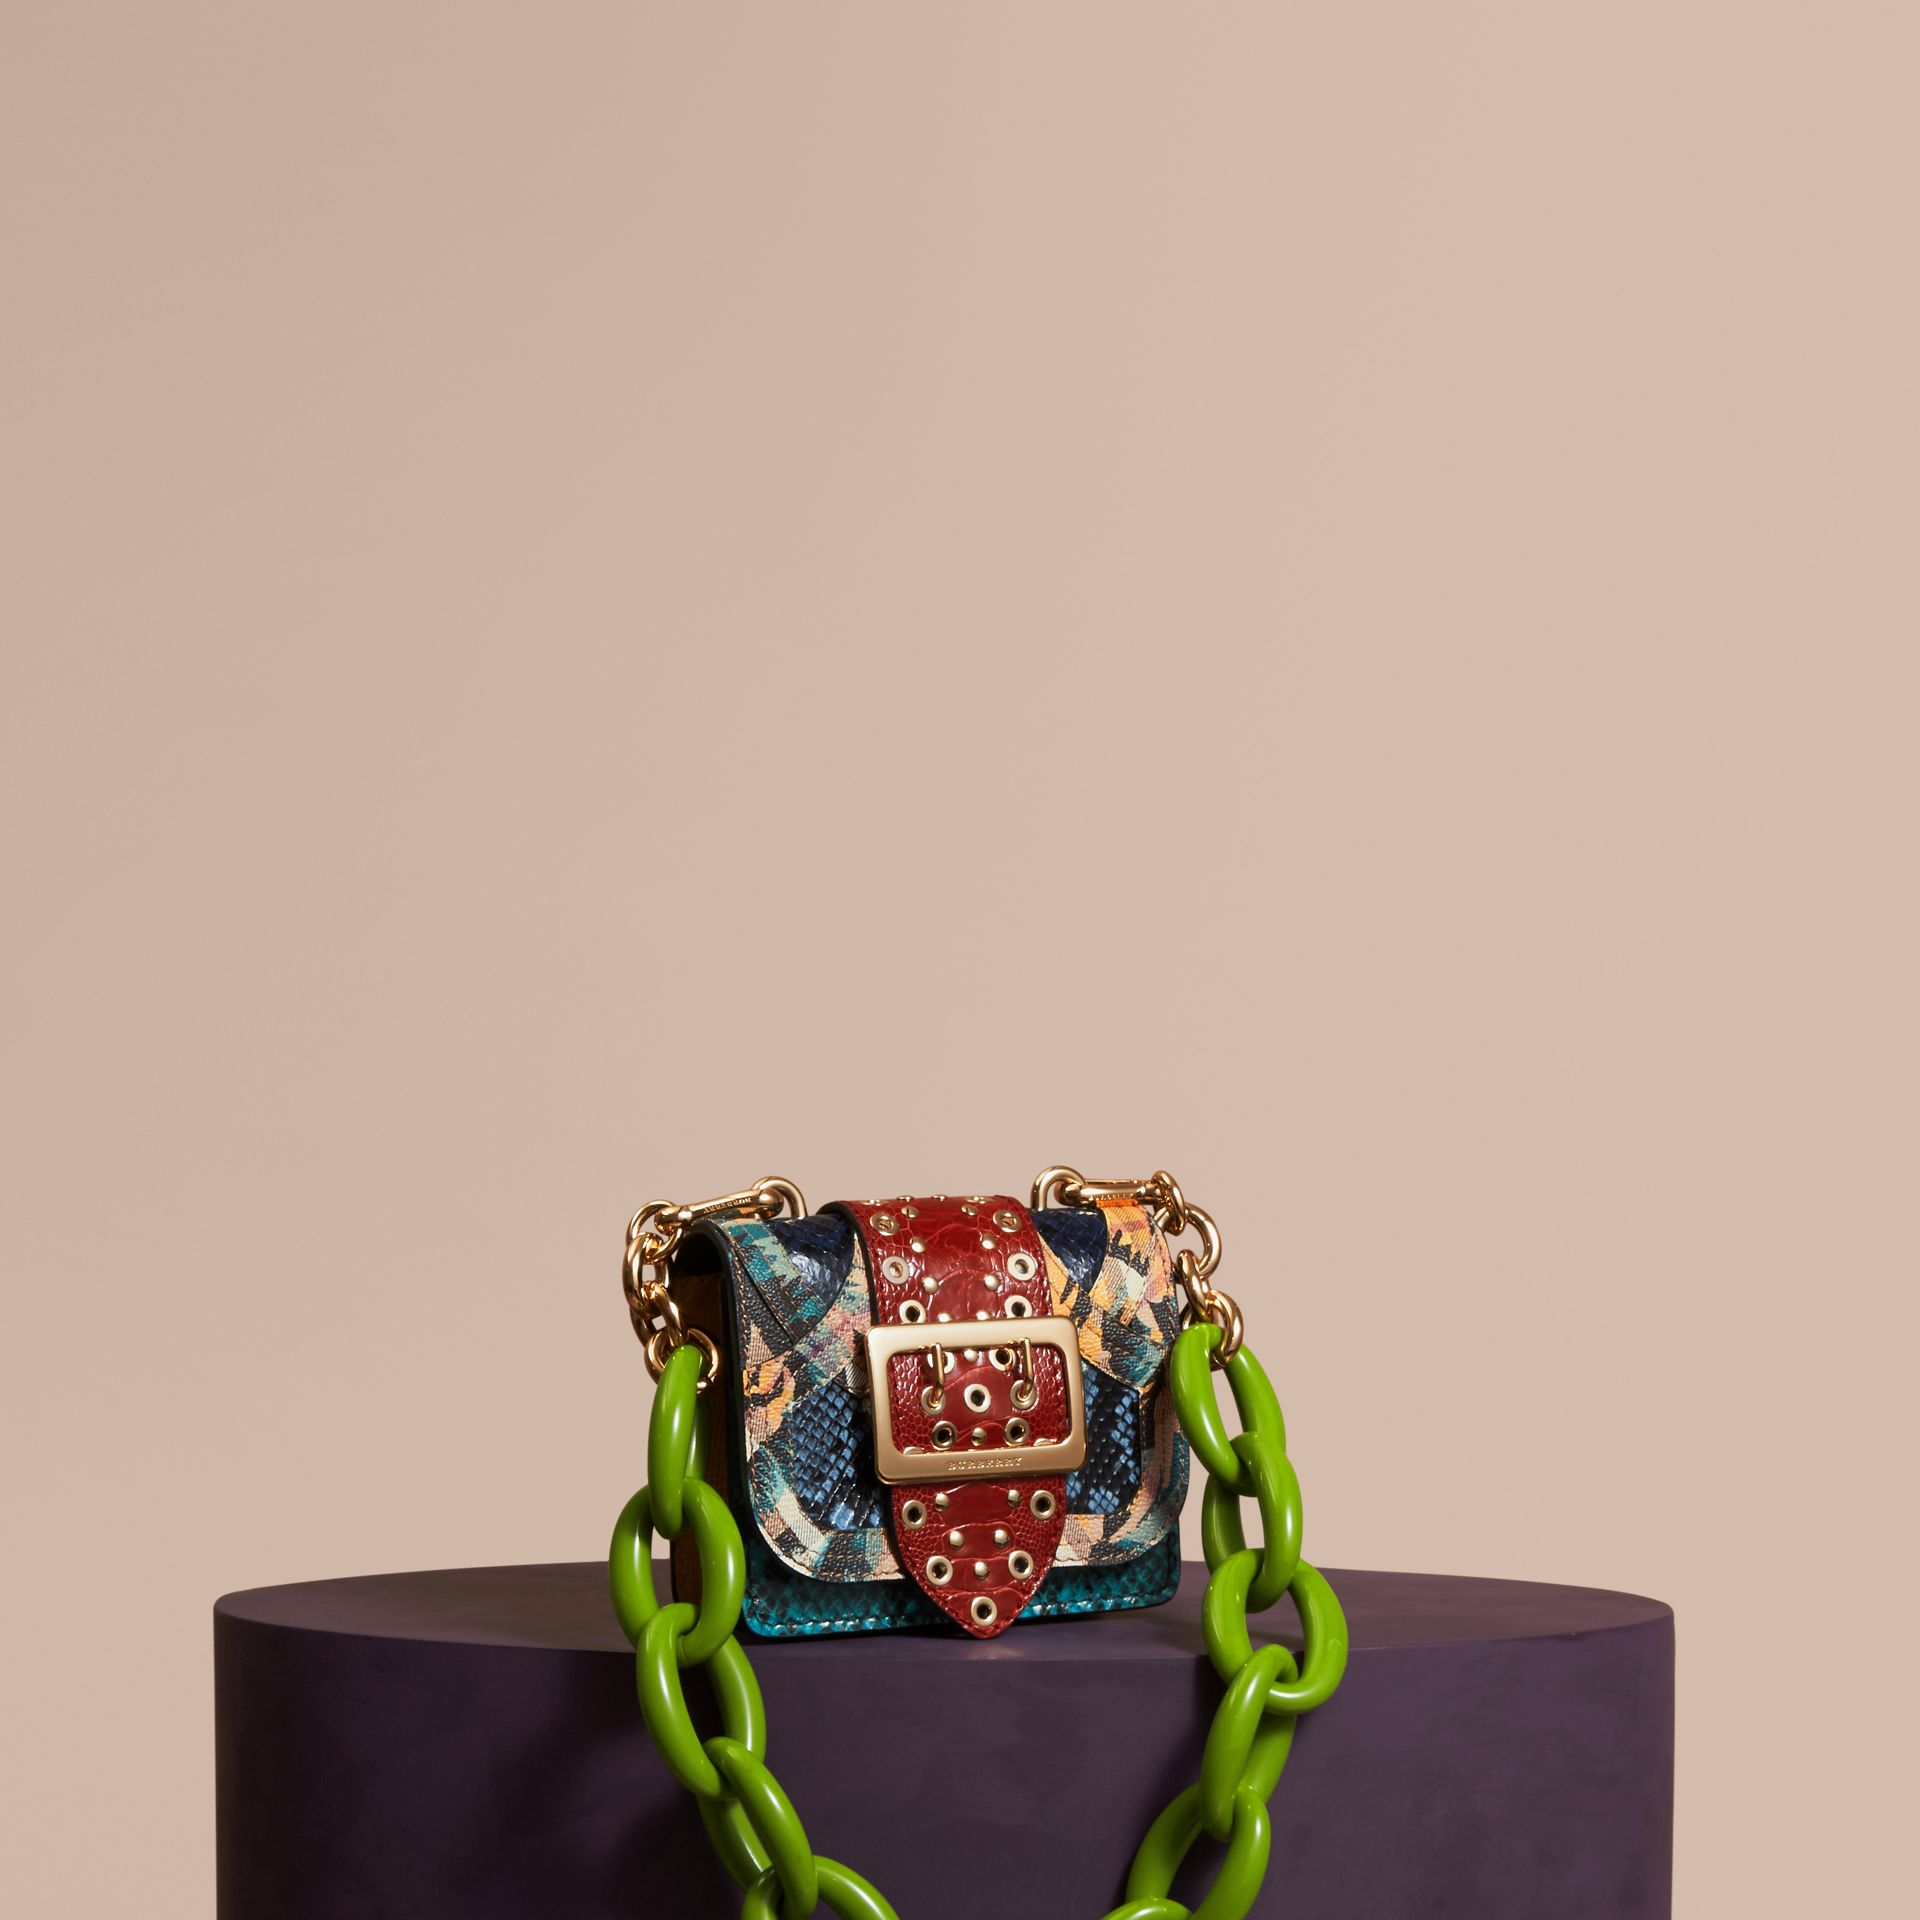 Pewter blue The Mini Square Buckle Bag in Snakeskin, Ostrich and Floral Print - gallery image 1